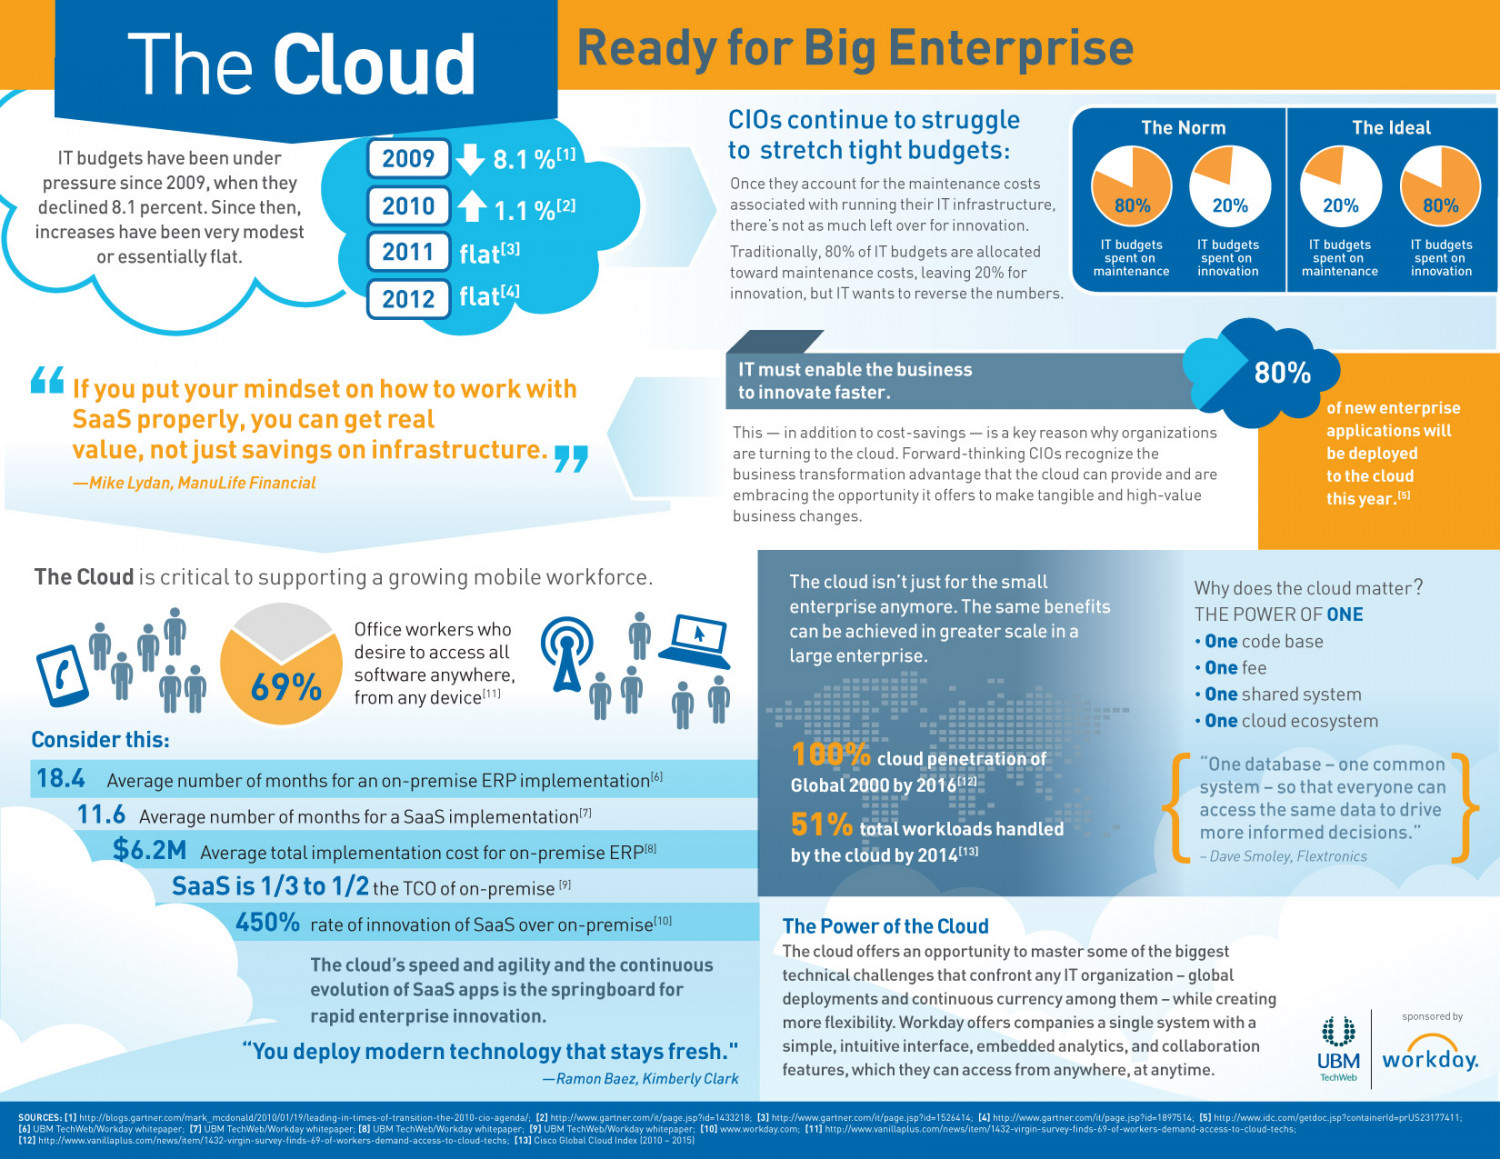 The Cloud: Ready for Big Enterprise Infographic